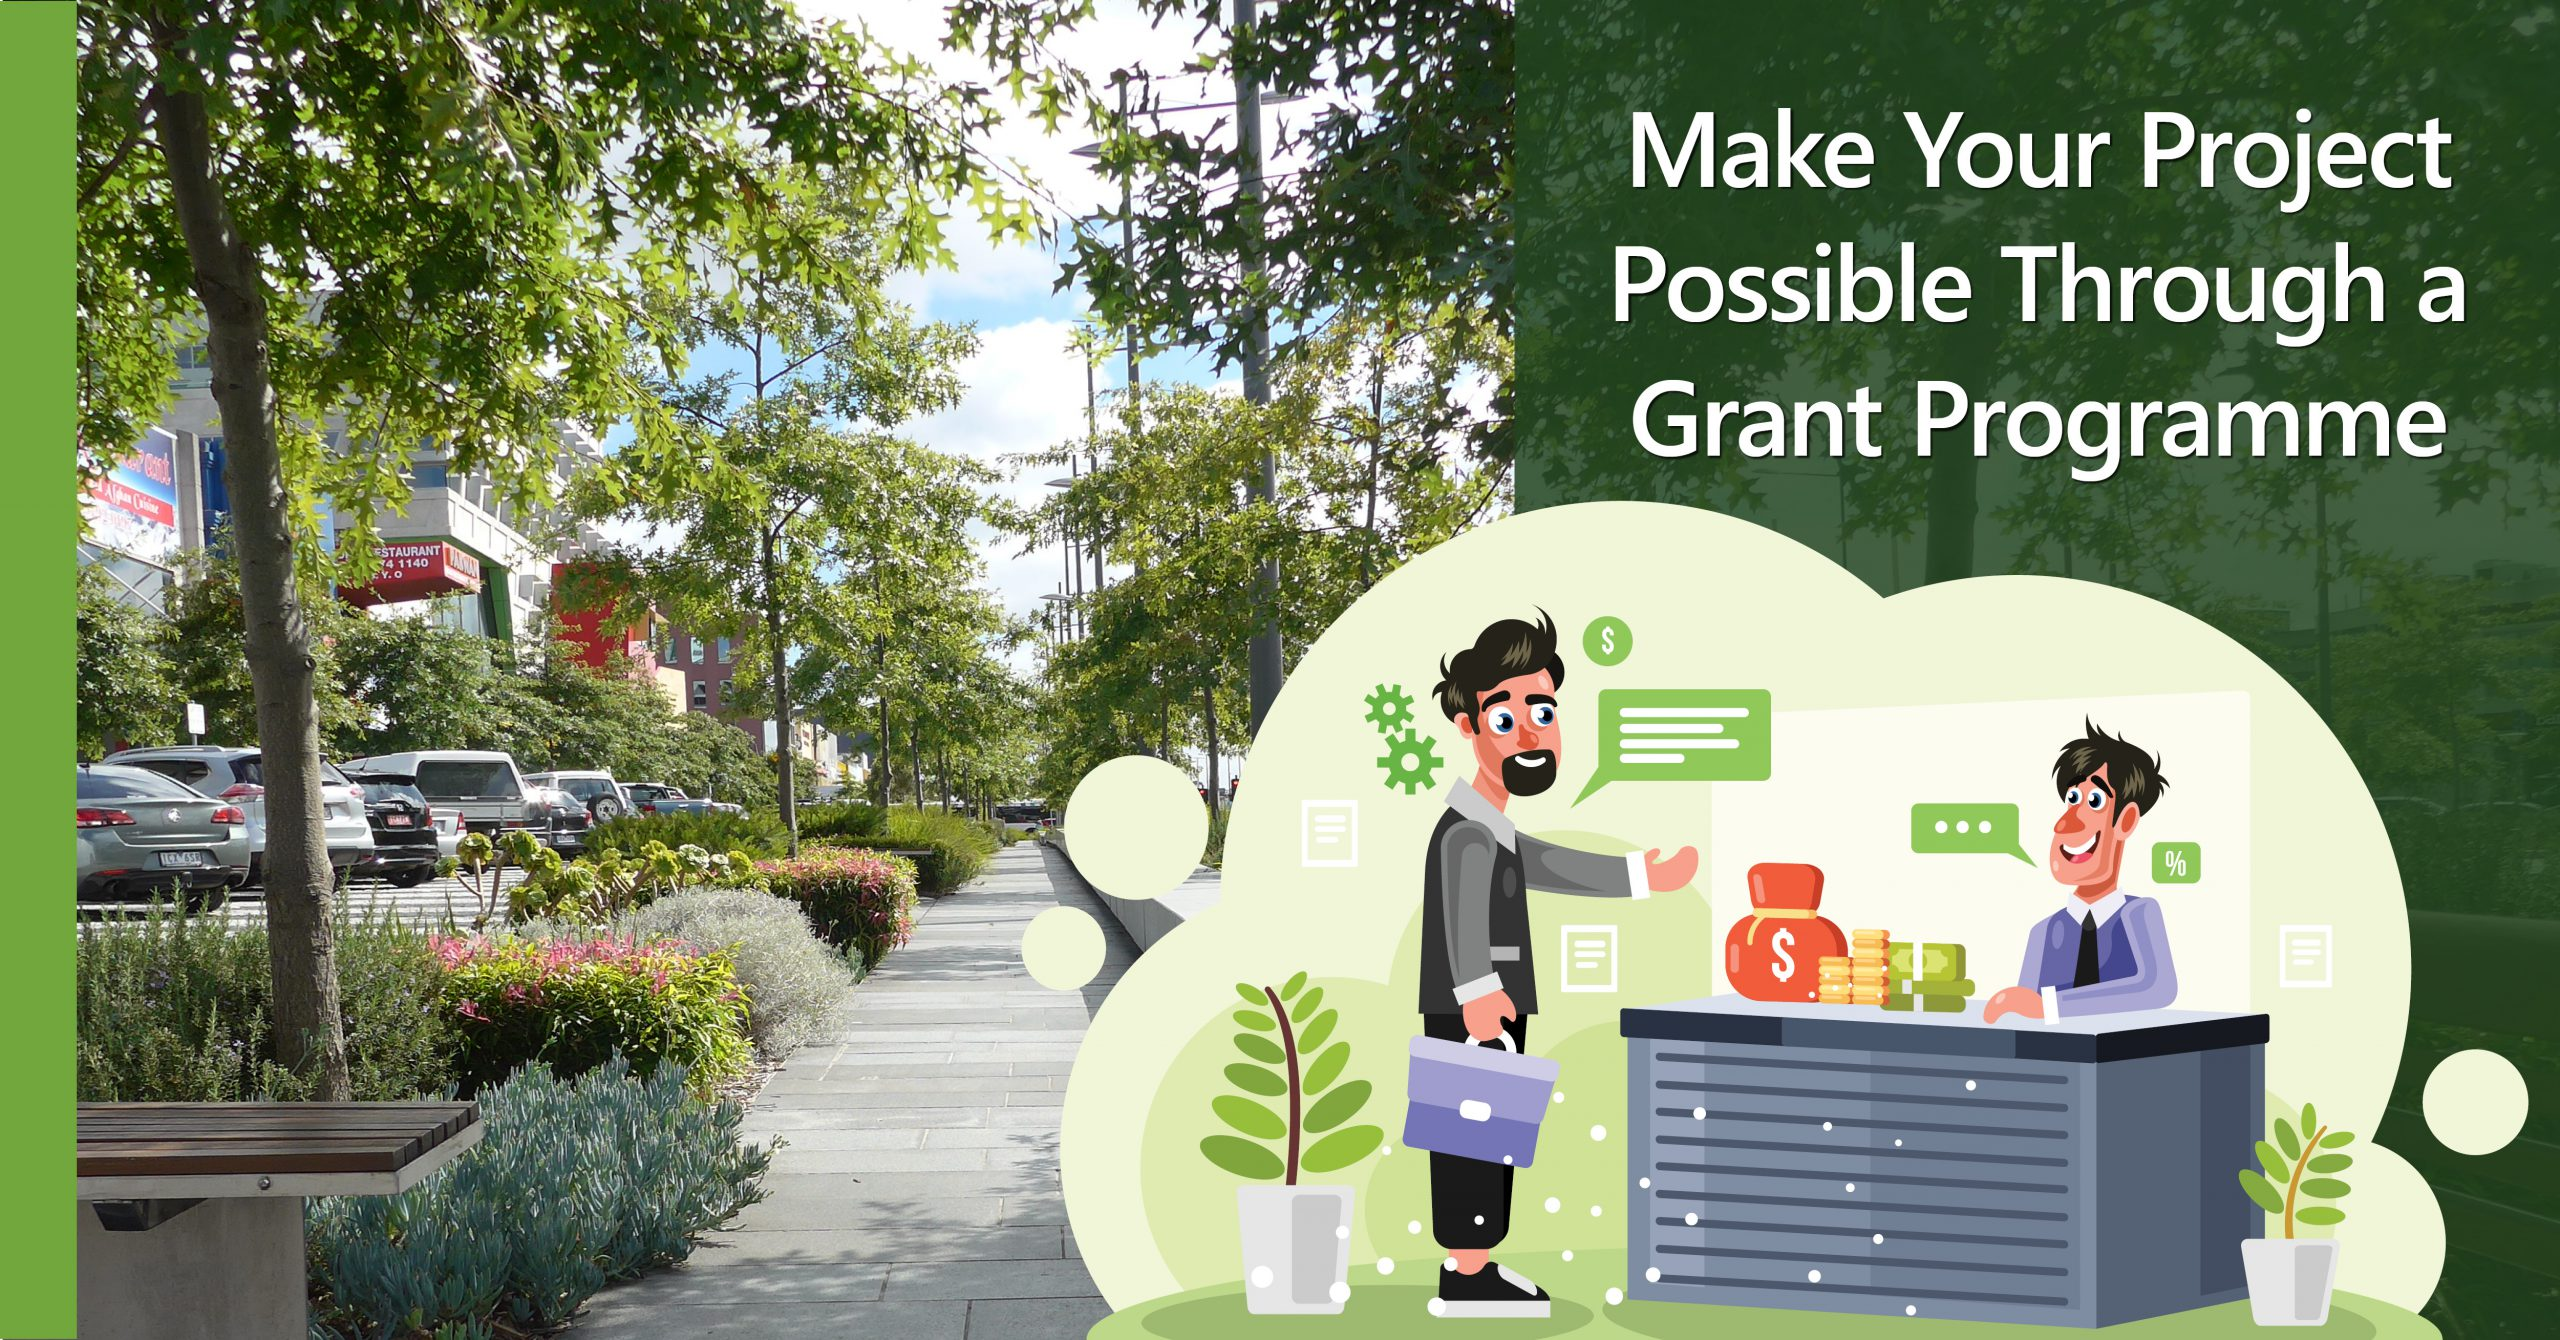 How to apply for a government grant to finance your green city project